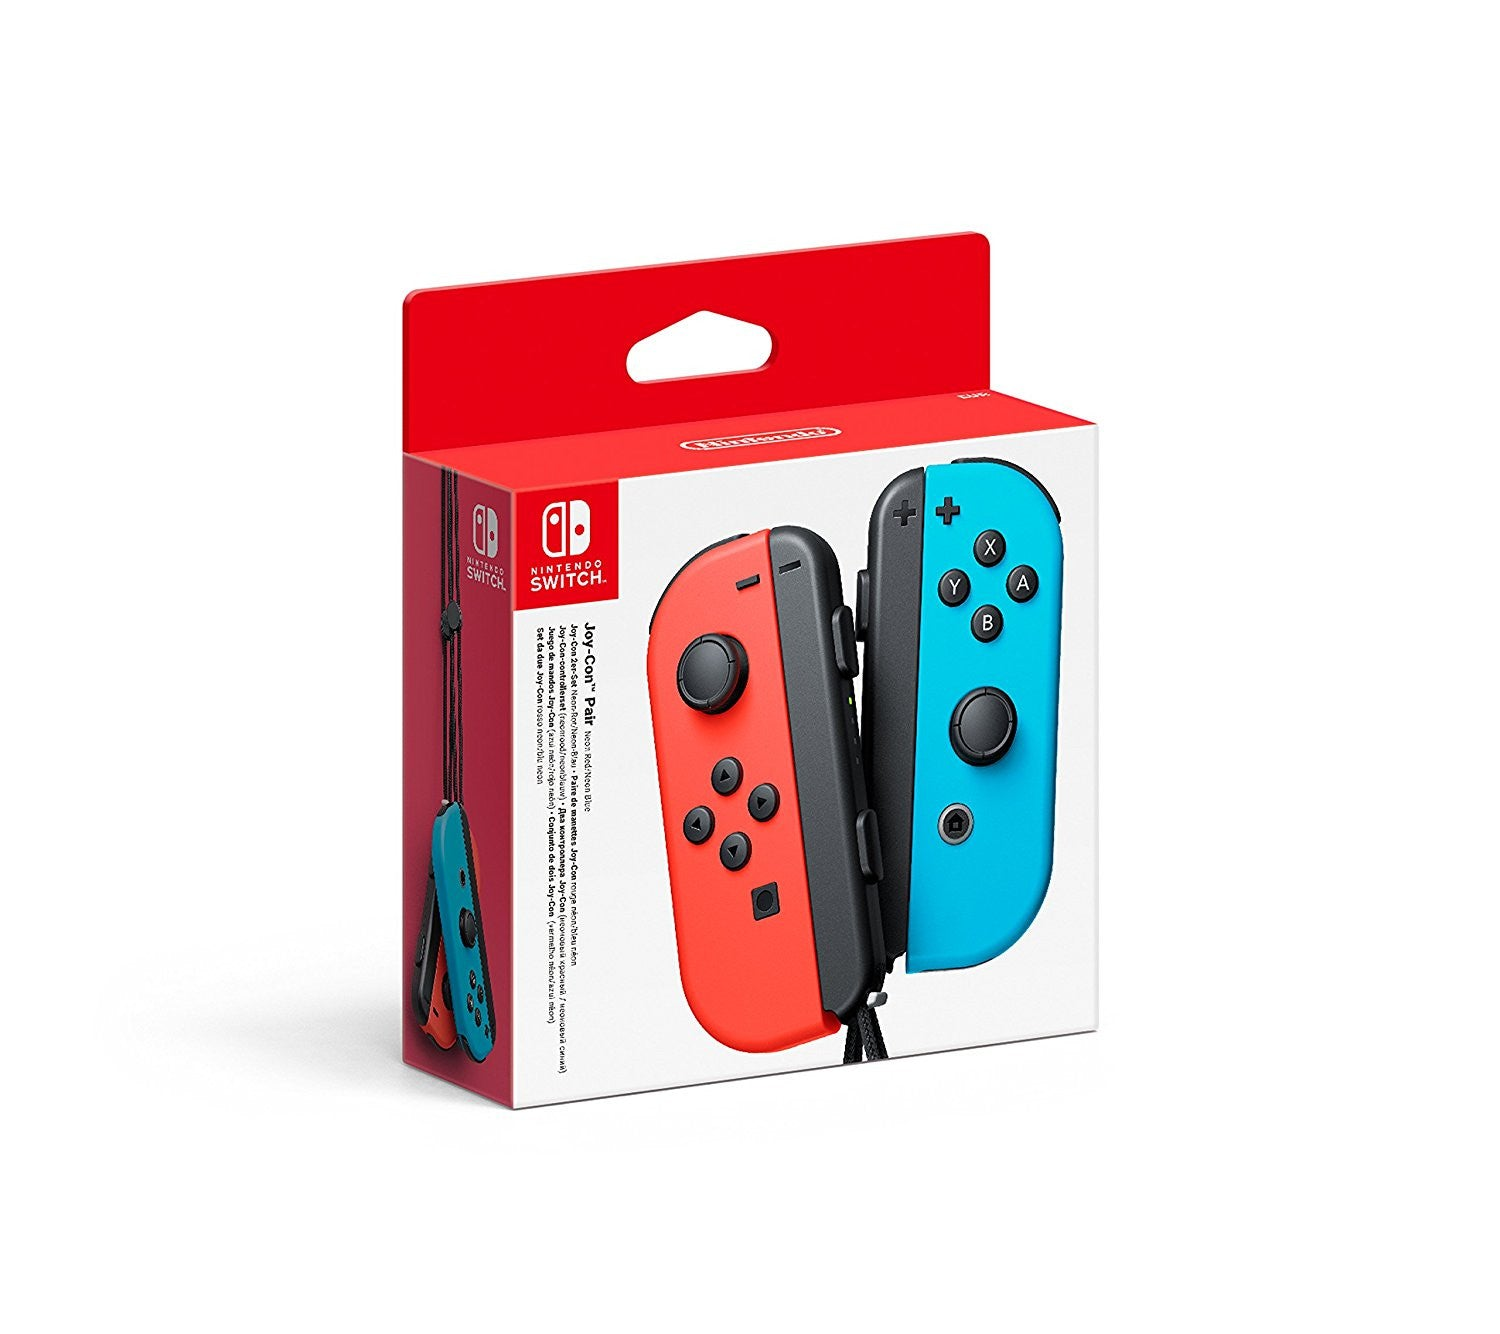 Nintndo Switch Joy-Con Pair Neon Red / Neon Blue - Console Accessories by Nintendo The Chelsea Gamer